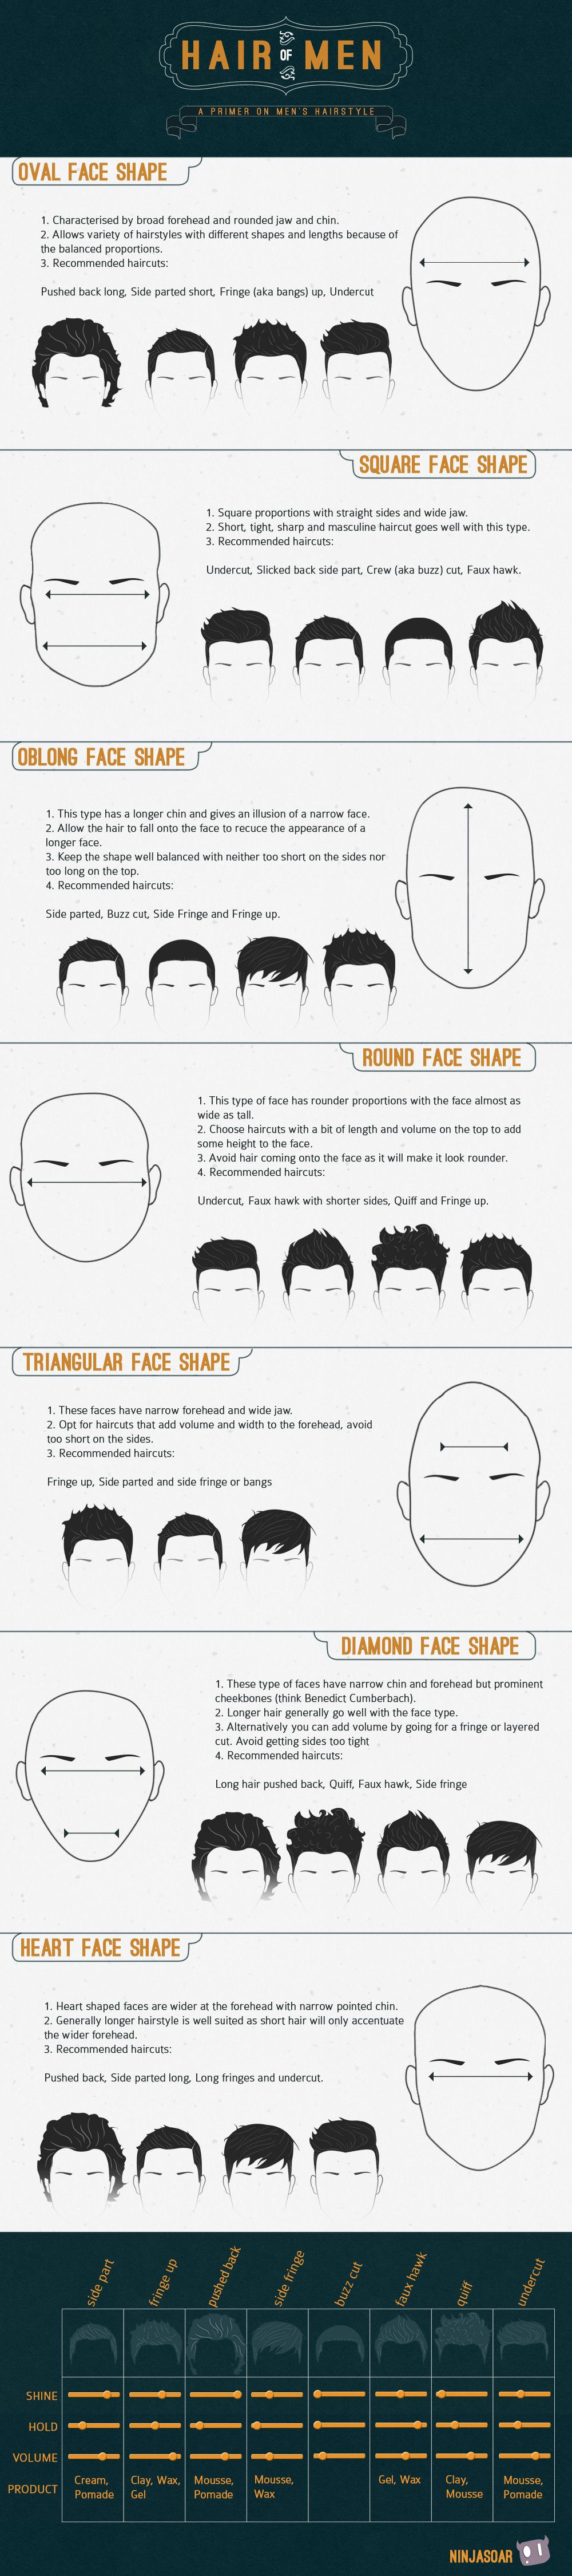 Square face haircut men a guide finding the right haircut  haircuts enemies and  years